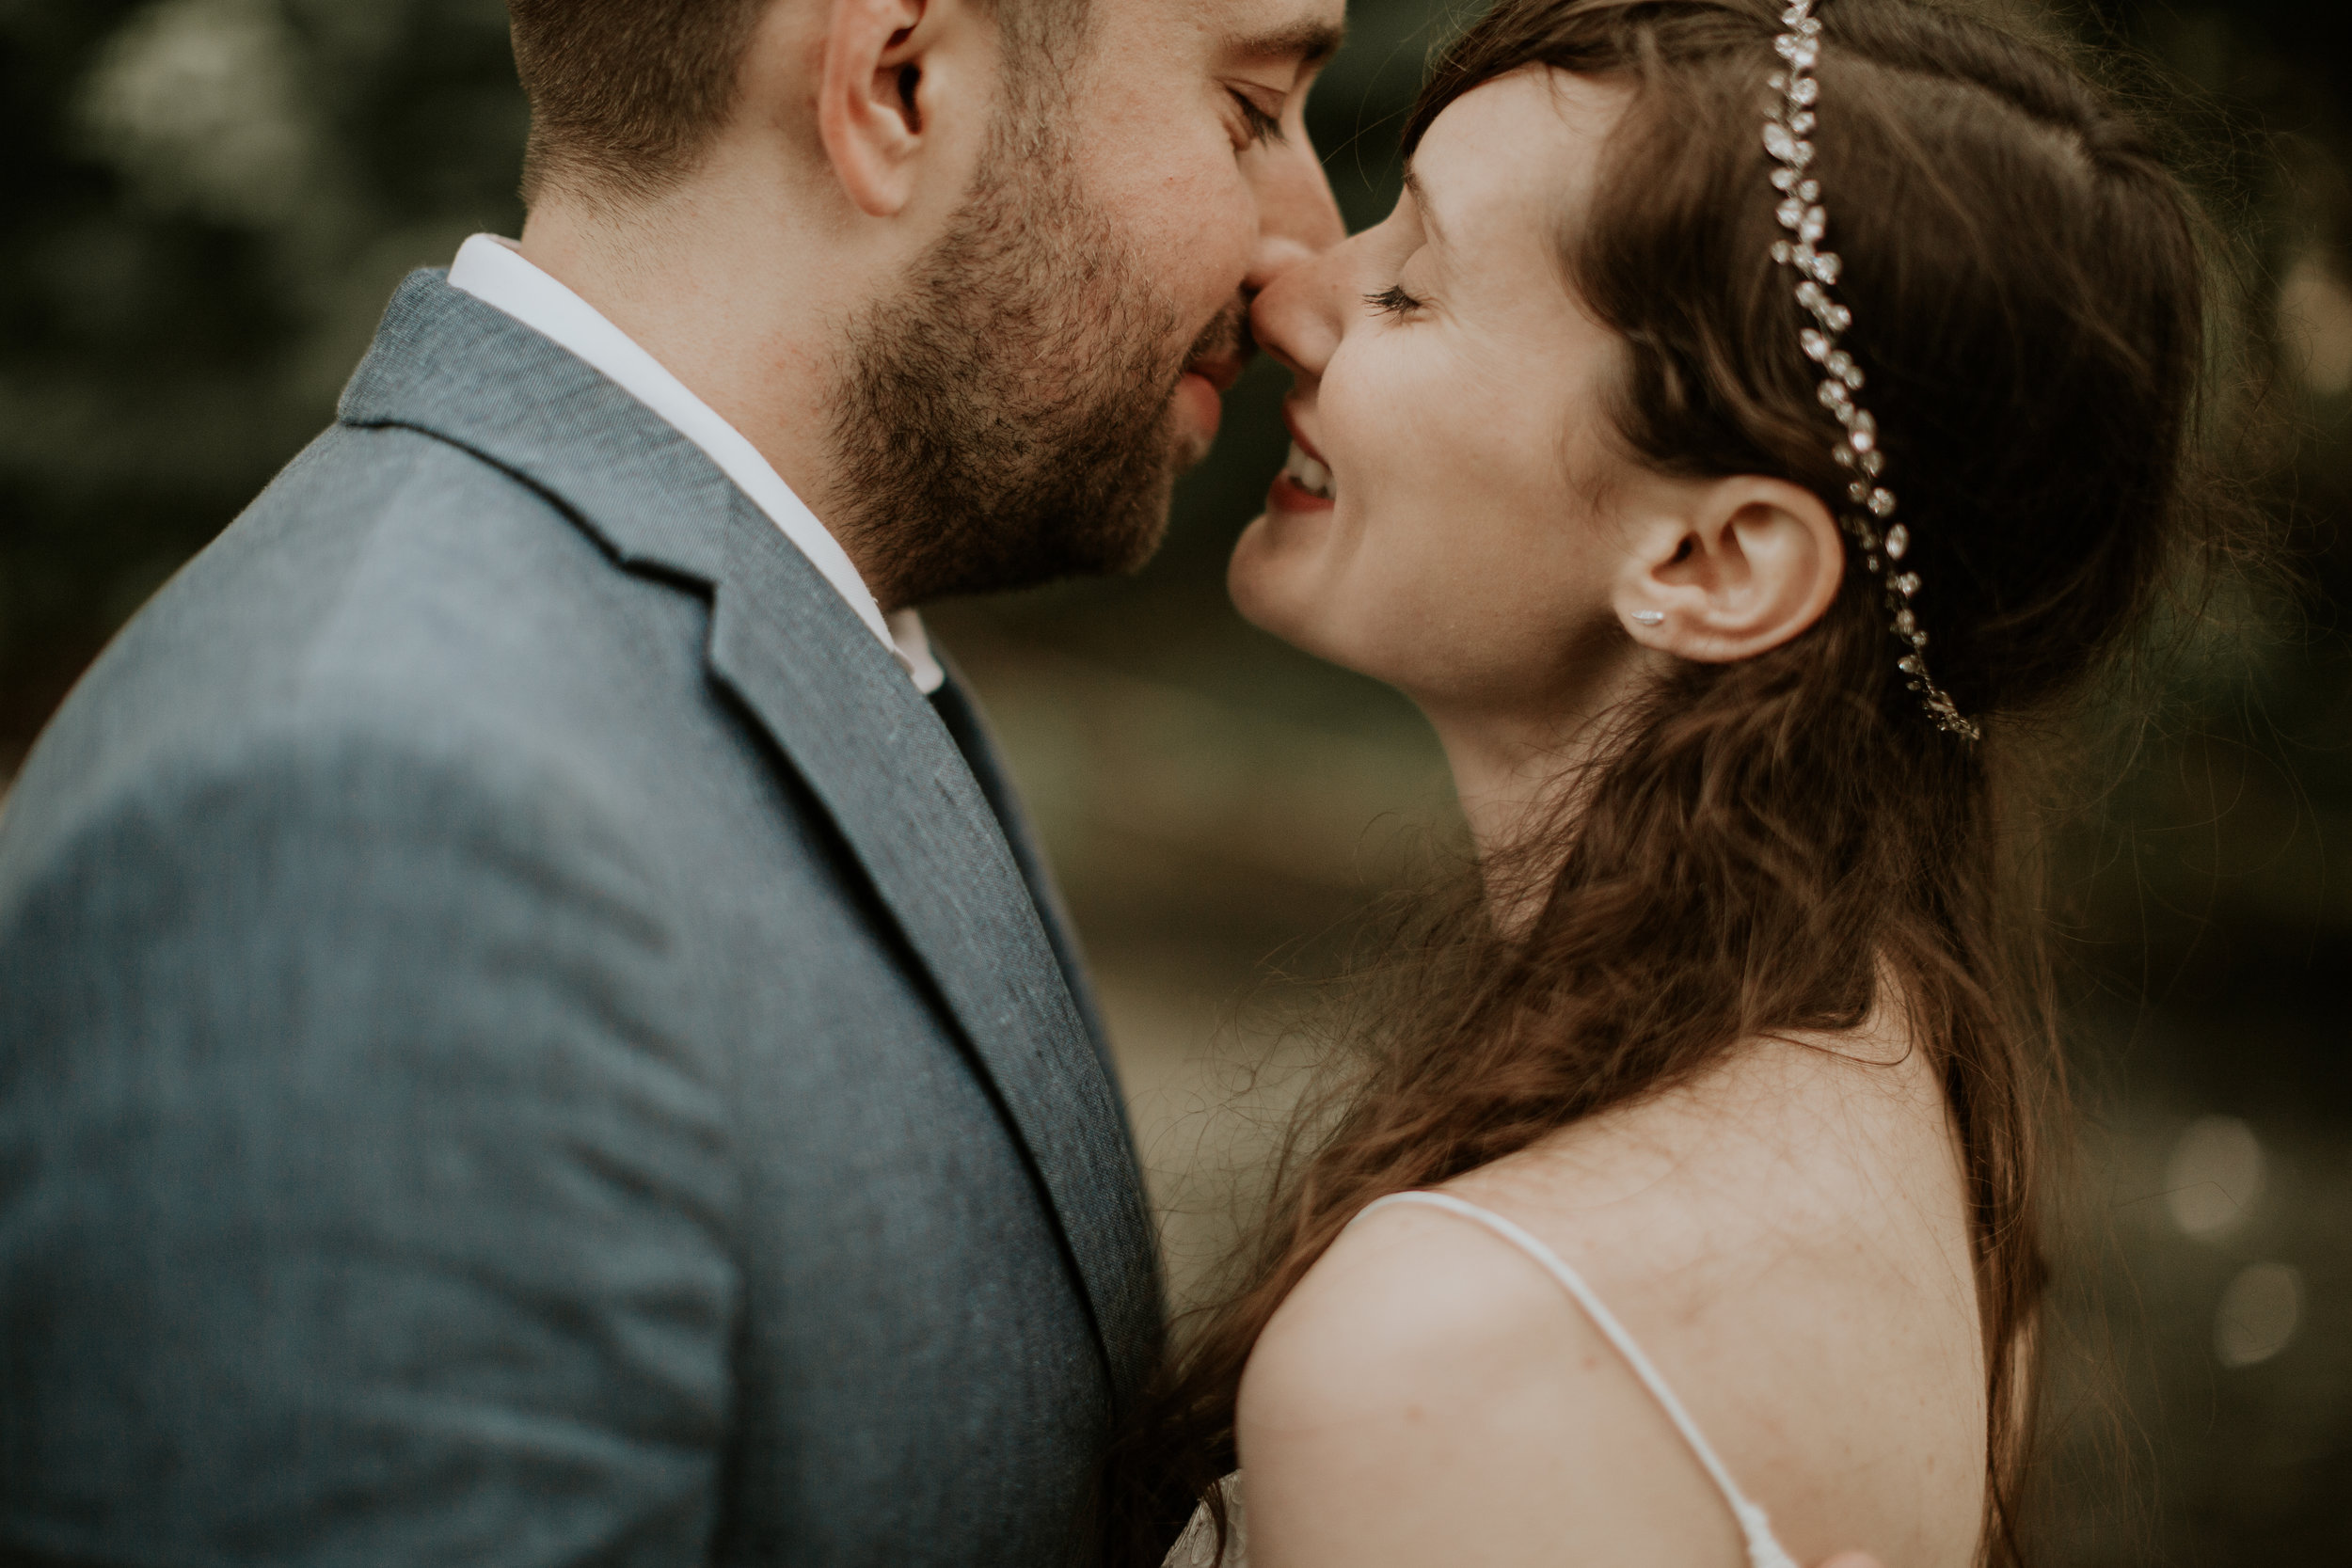 PNW-elopement-wedding-engagement-olympic national park-port angeles-hurricane ridge-lake crescent-kayla dawn photography- photographer-photography-kayladawnphoto-269.jpg